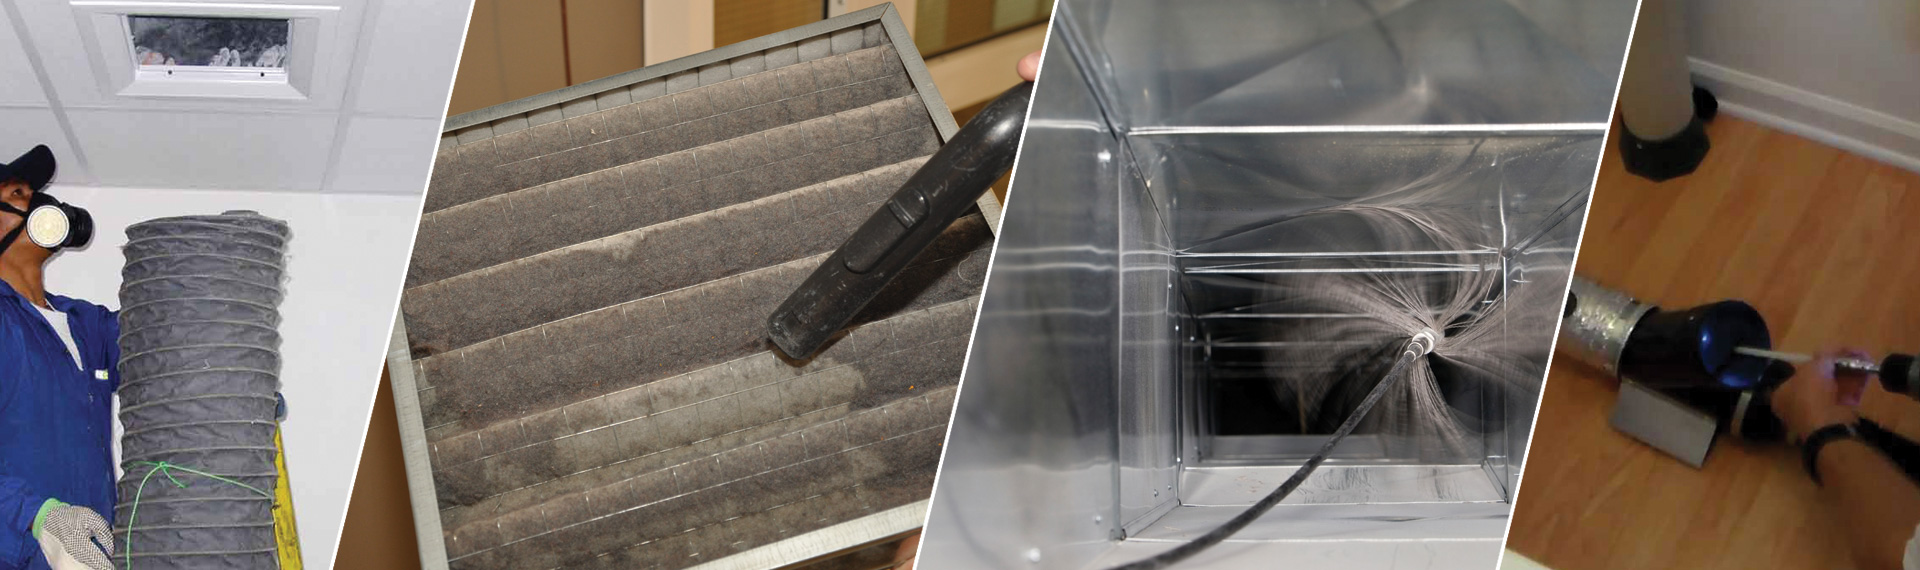 Reliable Air Duct Cleaning Camarillo CA